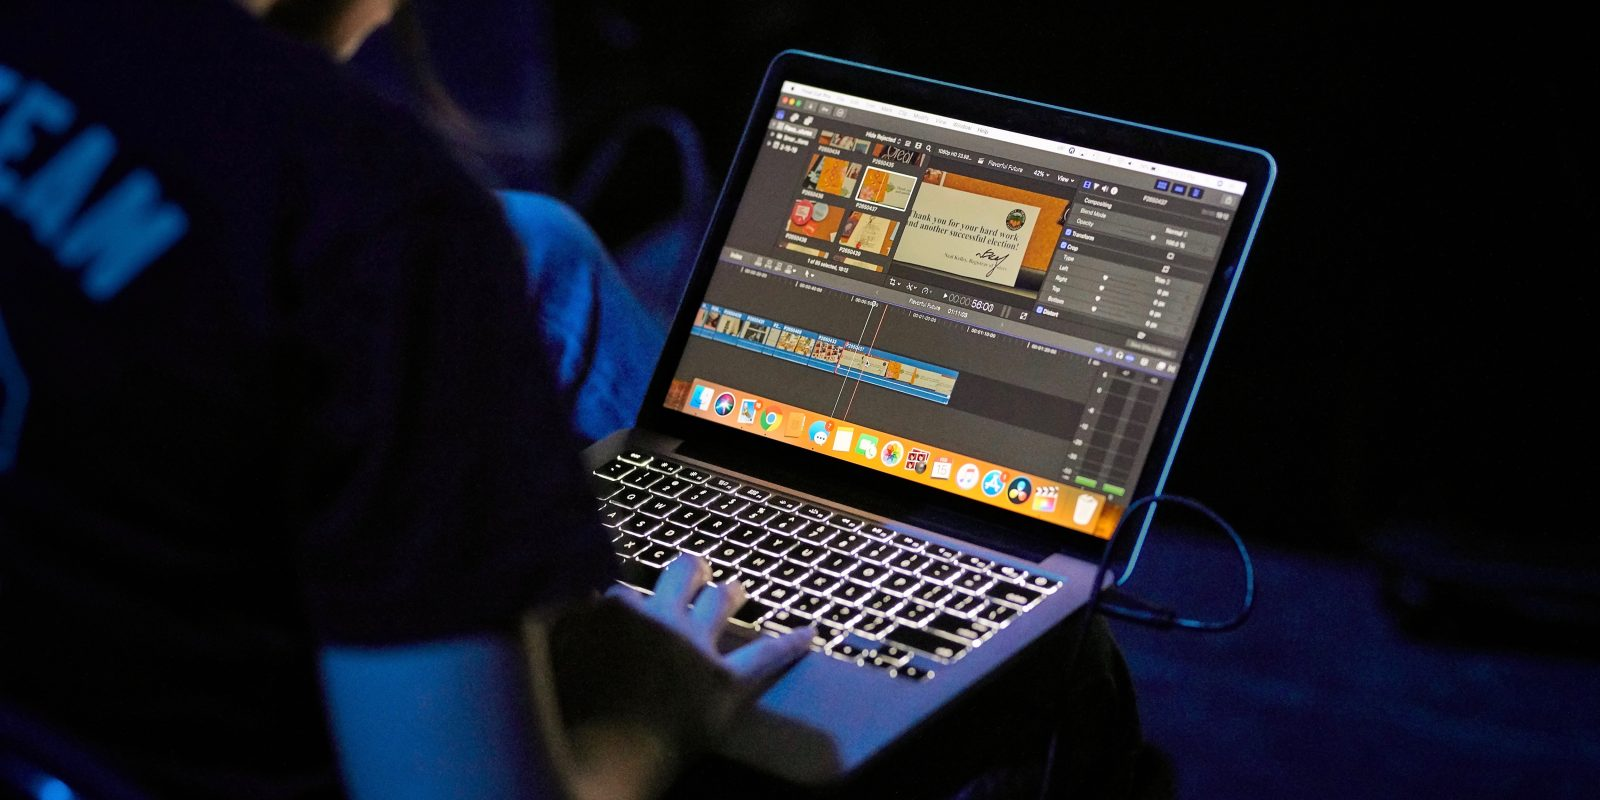 Apple highlights music and multimedia program for innovative technology use in the classroom